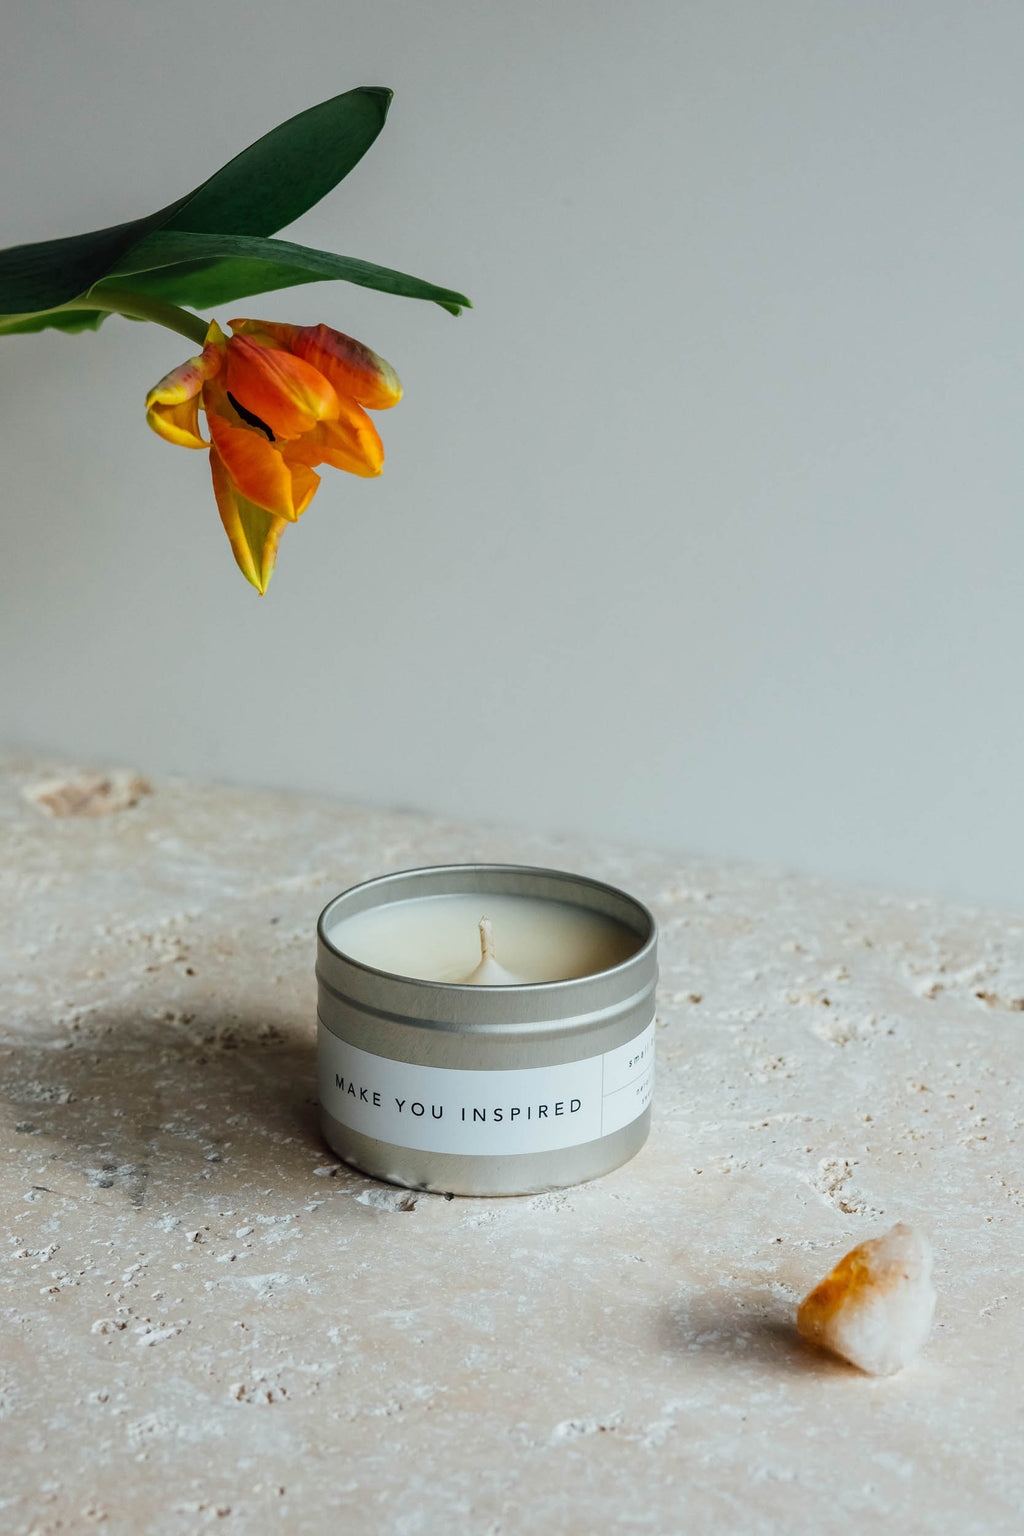 Make You Inspired | Small Meditation Candle